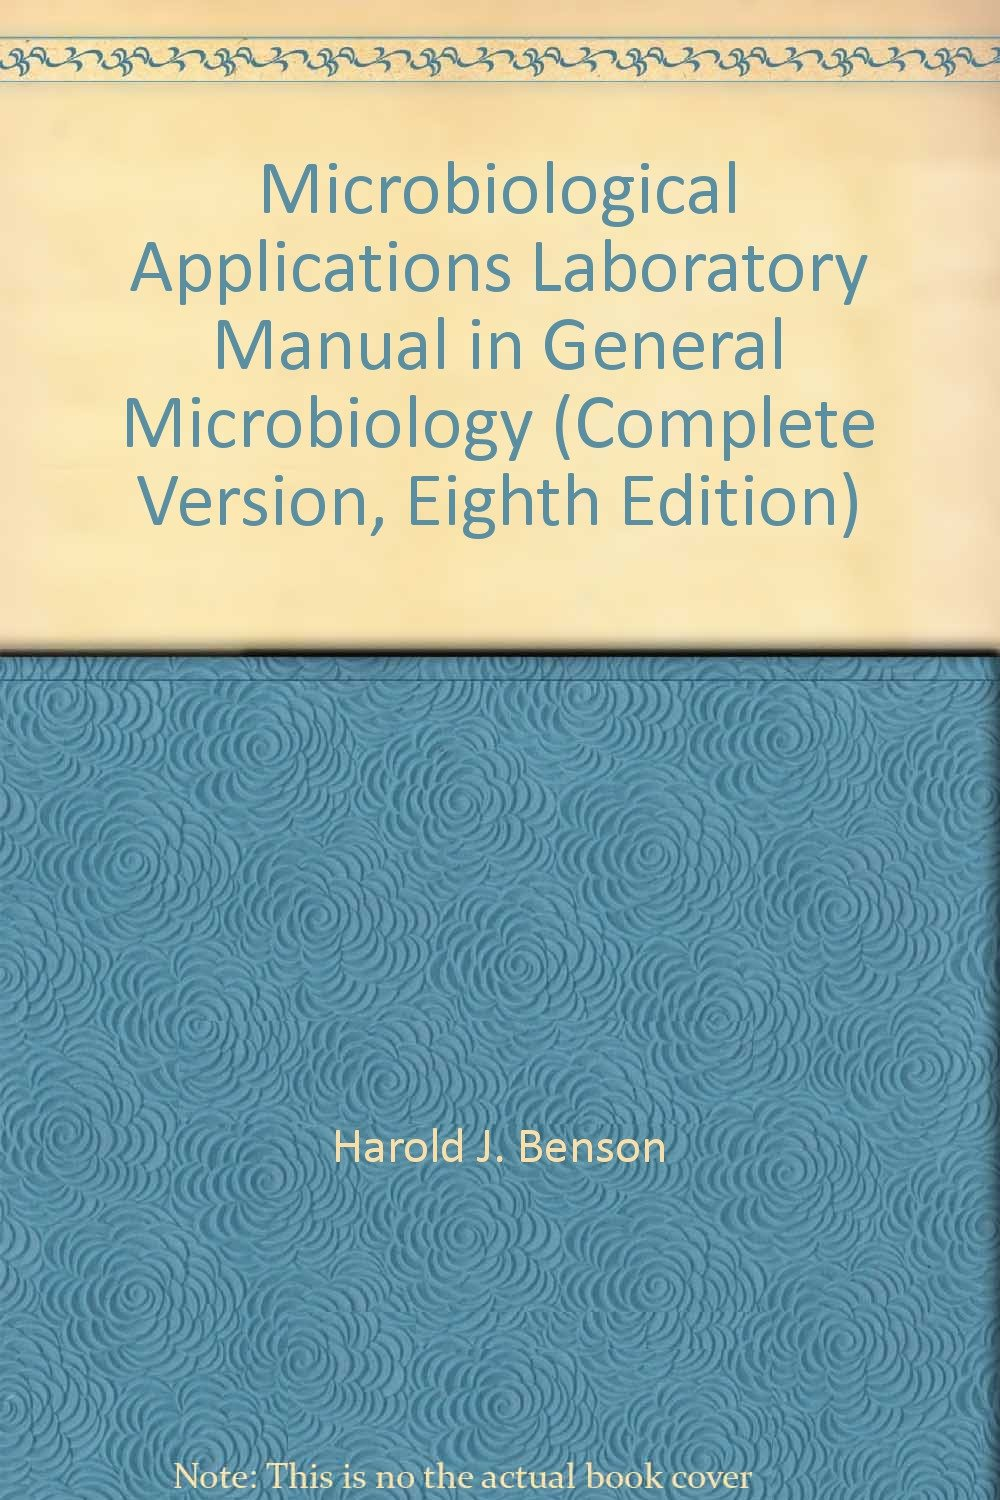 Microbiological Applications Laboratory Manual in General Microbiology  (Complete Version, Eighth Edition): Harold J. Benson: Amazon.com: Books